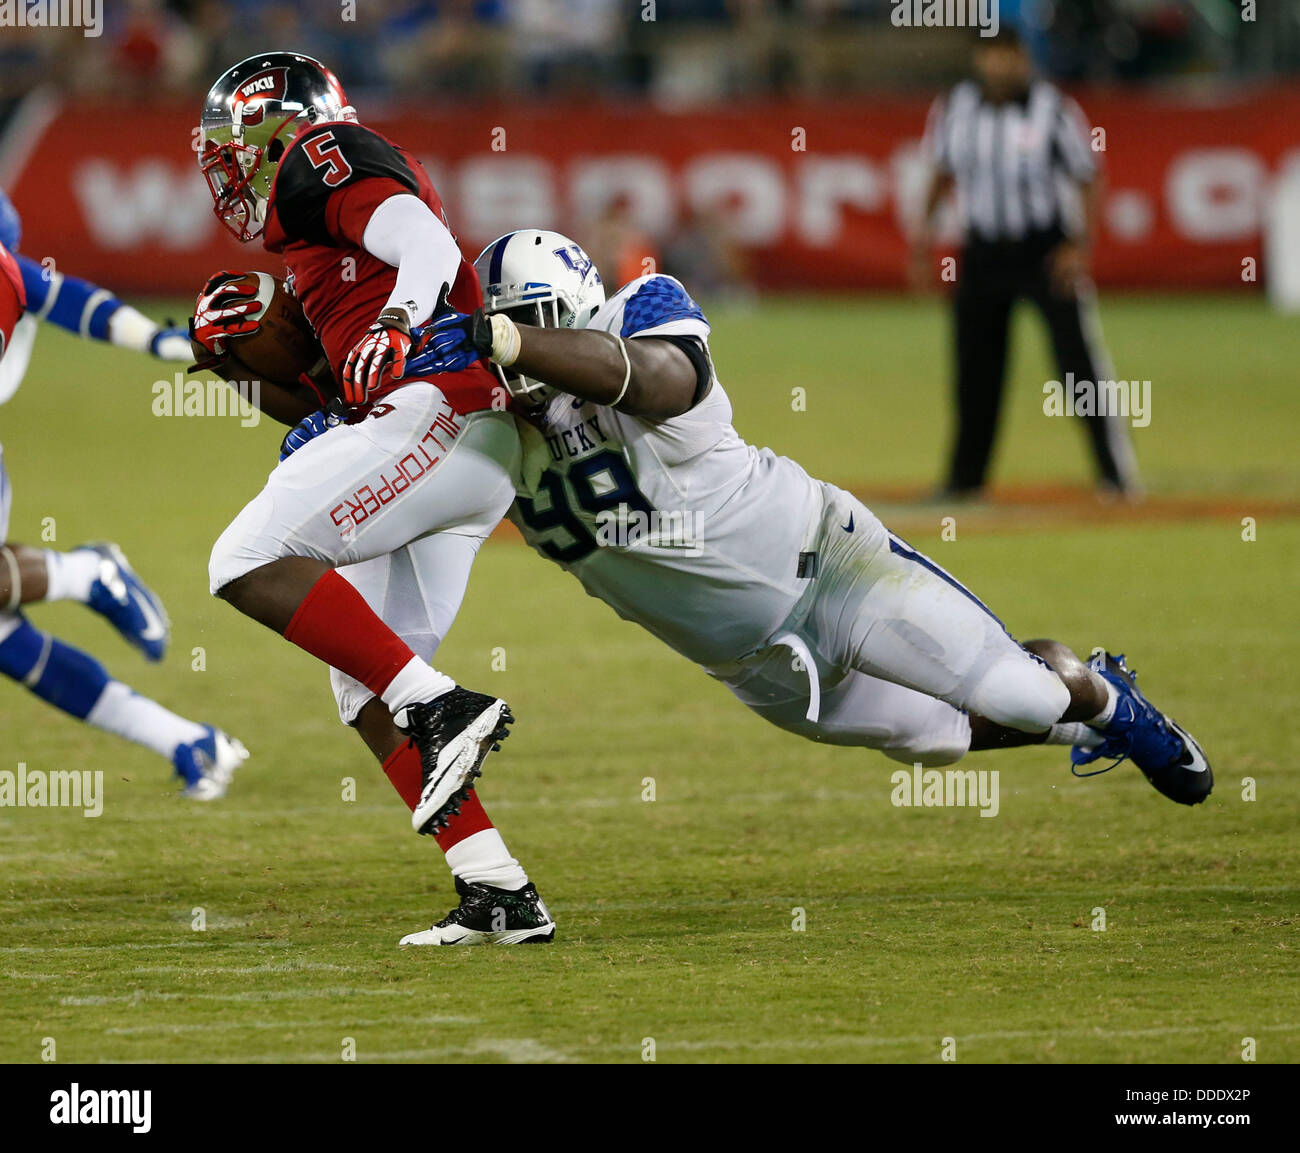 Aug. 31, 2013 - Nashville, TN, USA - Kentucky Wildcats defensive tackle Donte Rumph (99) laid out to bring down - Stock Image